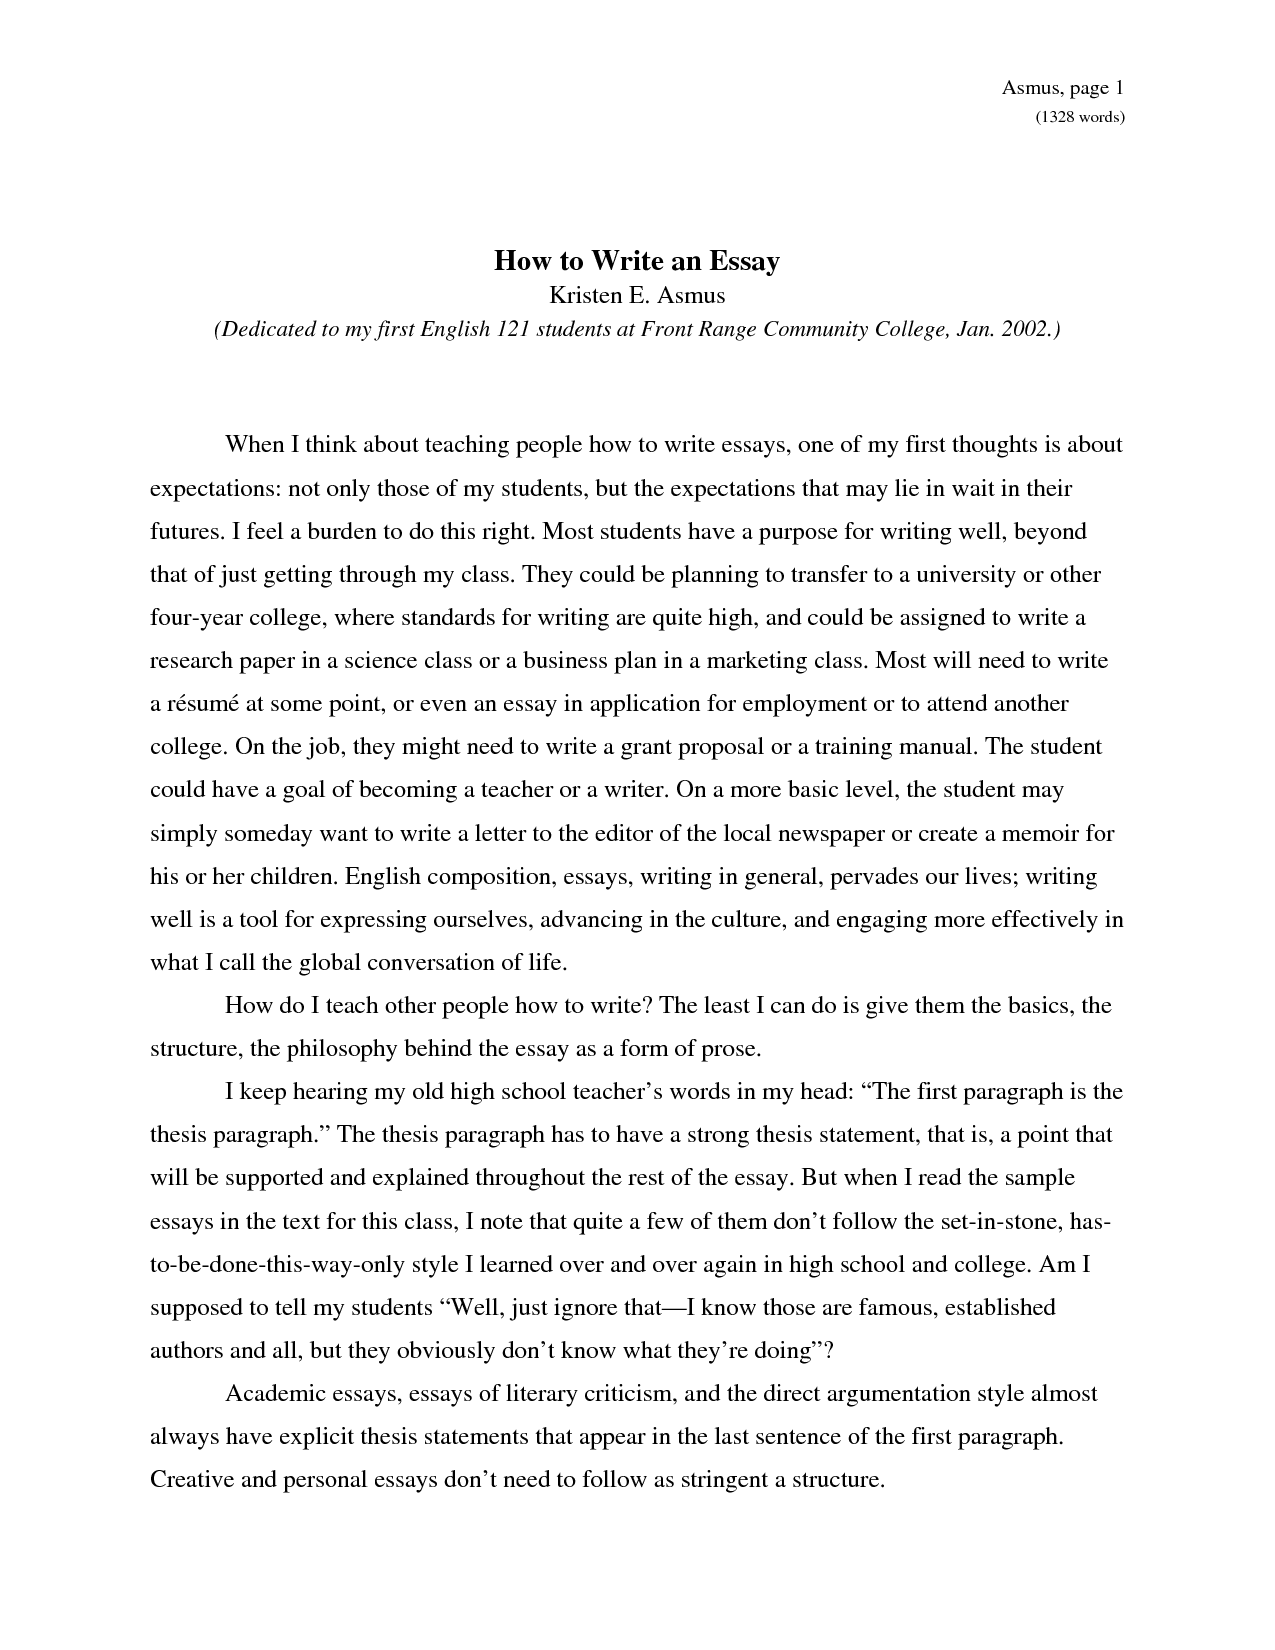 005 How To Essays Essay Example Write An Obfuscata Sample Of L Excellent For 4th Grade Scholarships Full